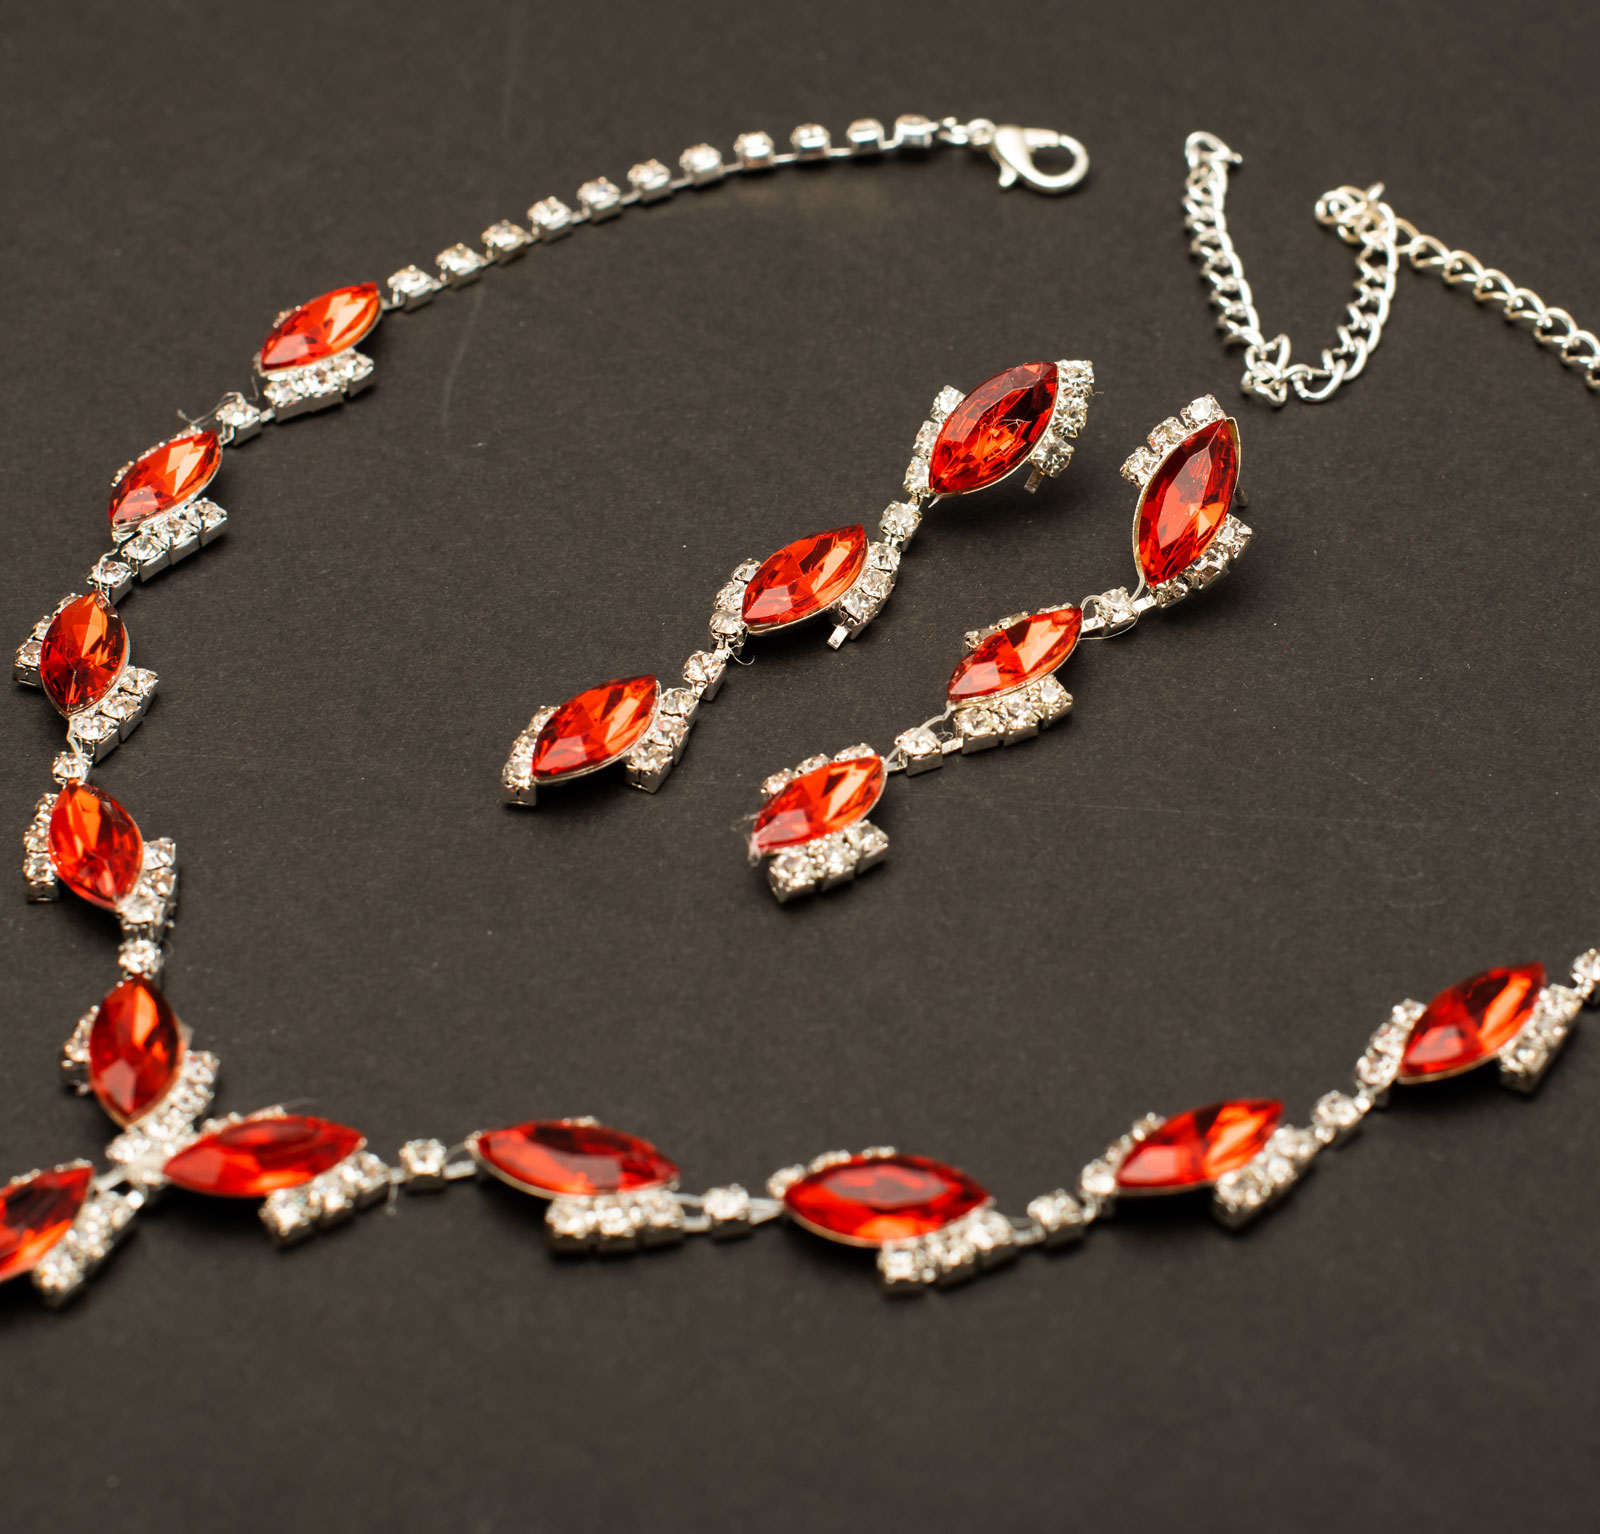 Collier Schmuck Strass Set Schmuckset Collier Kette Ohrringe Rot Luxus